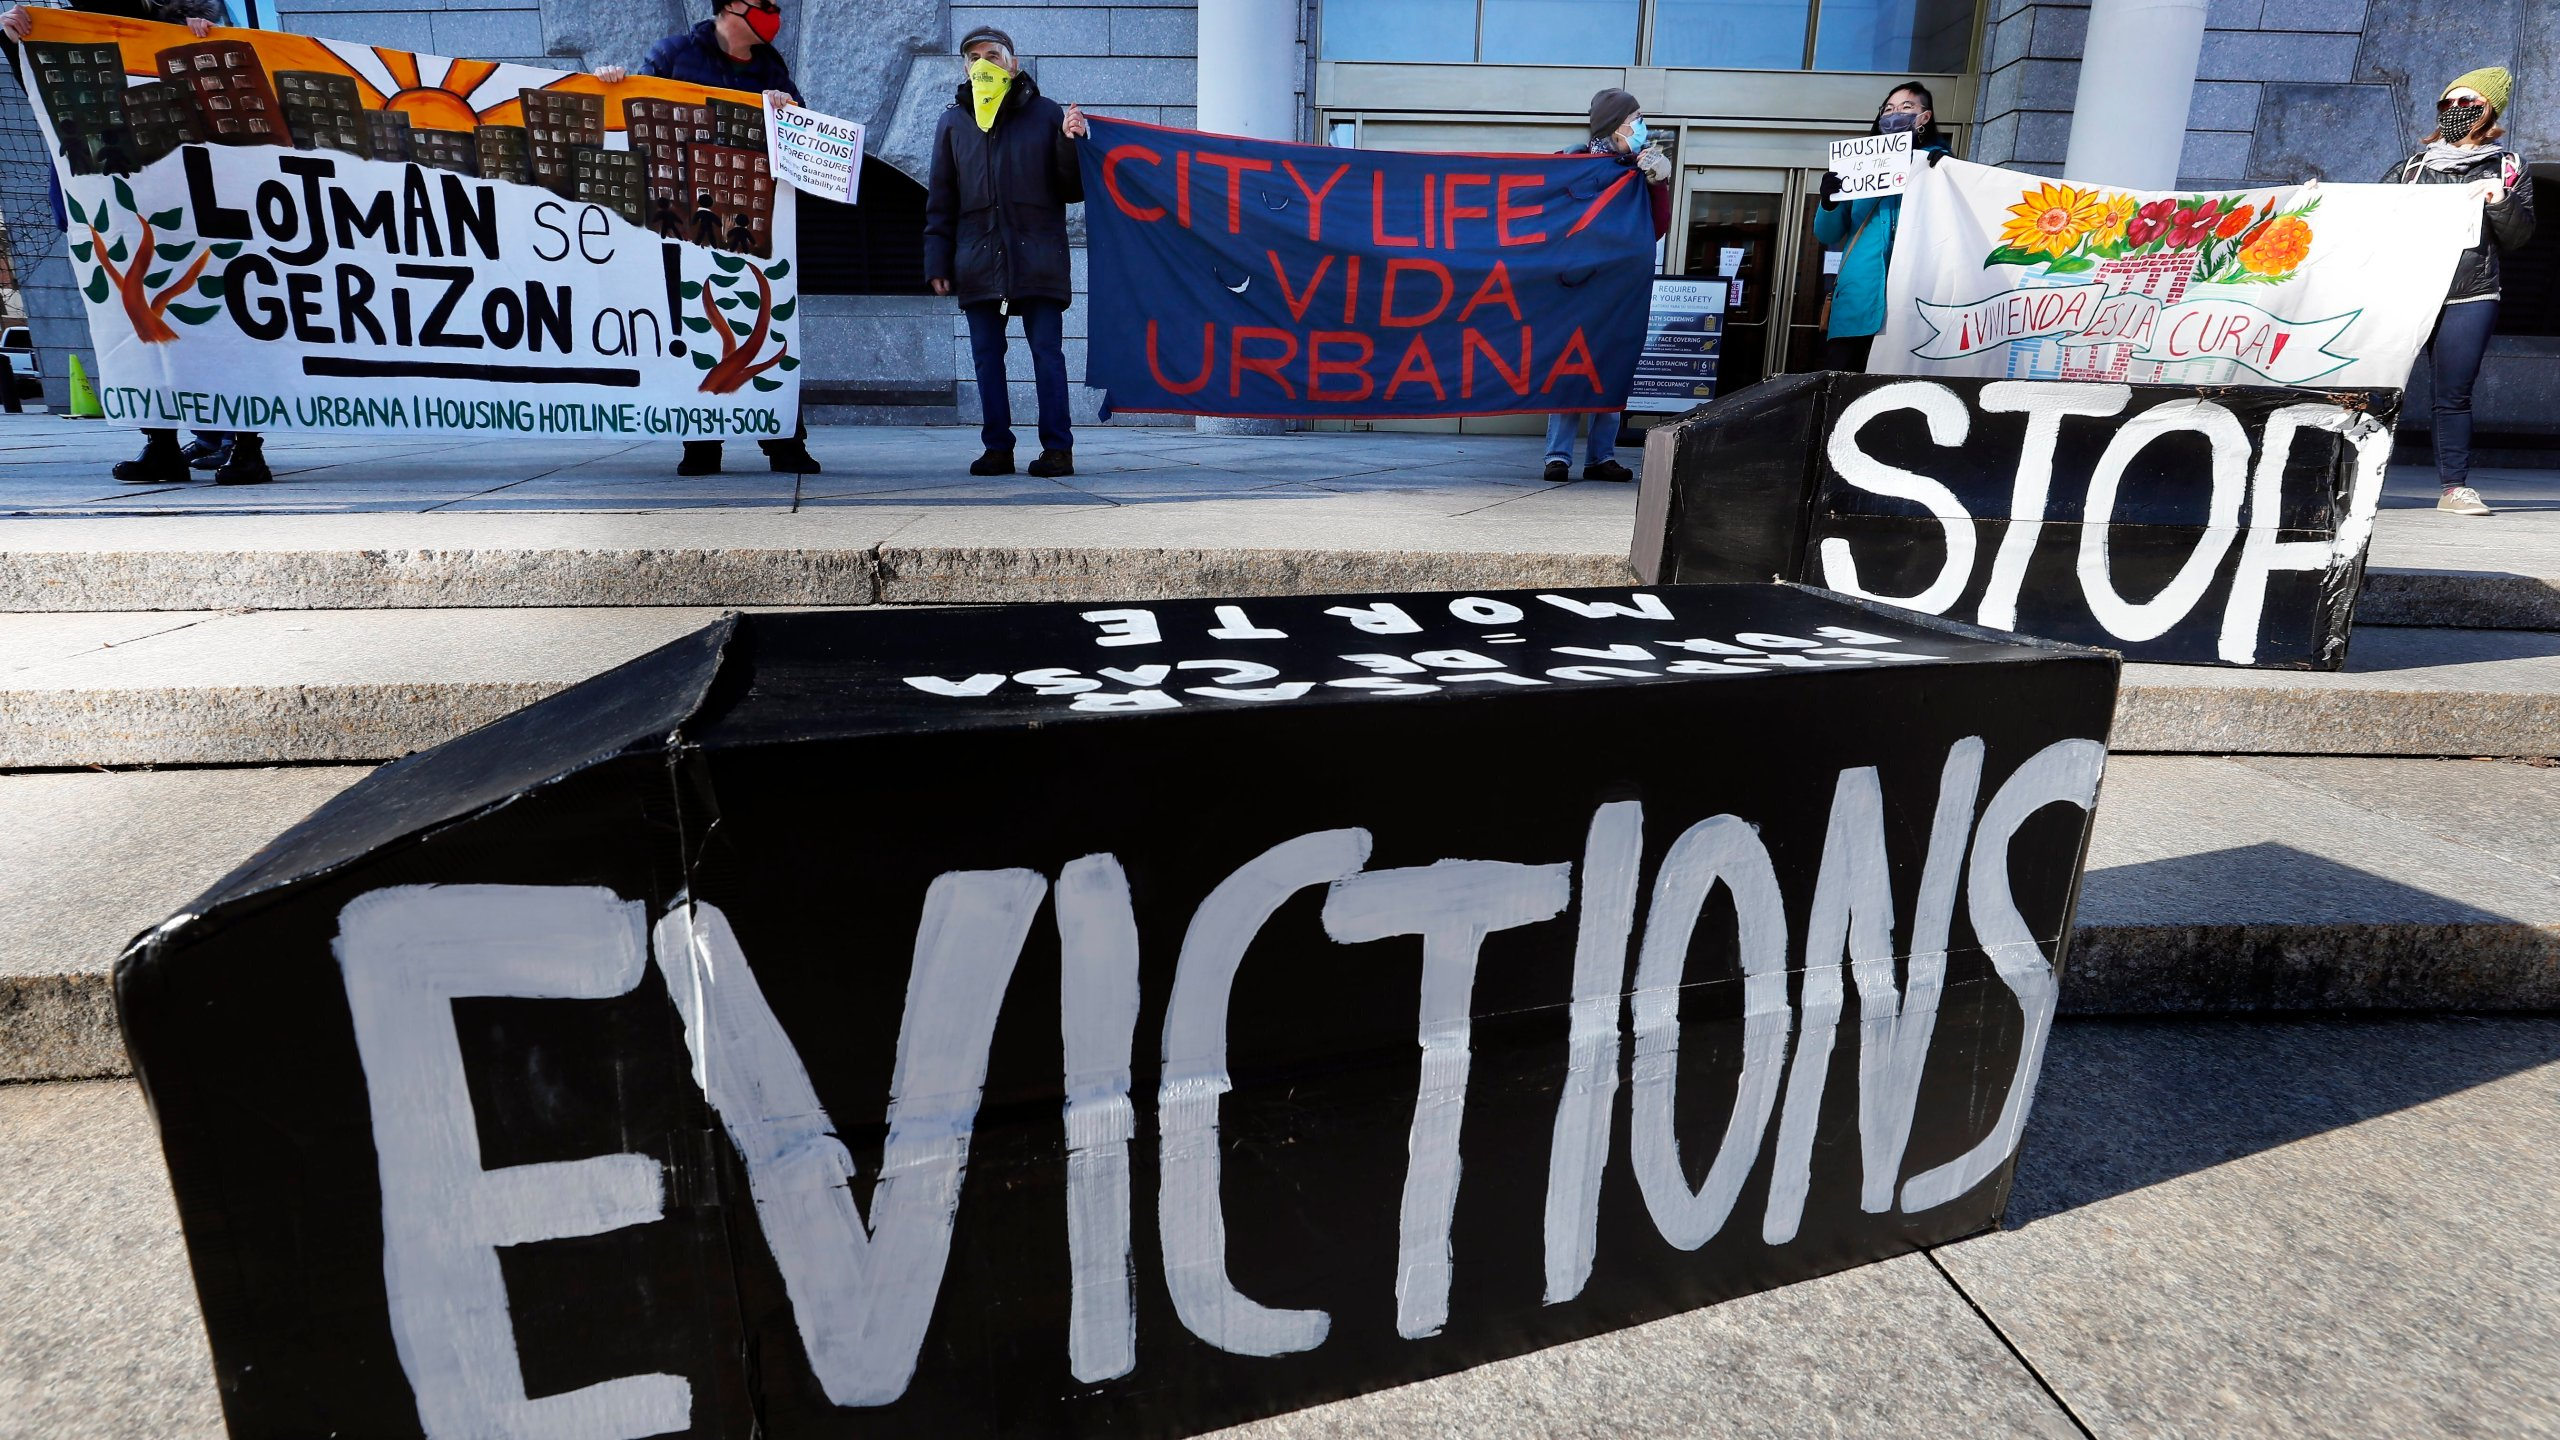 In this Jan. 13, 2021, file photo, tenants' rights advocates demonstrate in front of the Edward W. Brooke Courthouse in Boston. A federal judge who declared the earlier nationwide moratorium on evictions illegal is deeply skeptical of the Biden administration's new order, but says she may lack the power to do anything about it. U.S. District Judge Dabney Friedrich on Monday promised a decision soon in an effort by Alabama landlords to block the moratorium imposed last week by the Centers for Disease Control and Prevention, which it said was based on the spread of COVID-19′s delta variant. (AP Photo/Michael Dwyer, File)